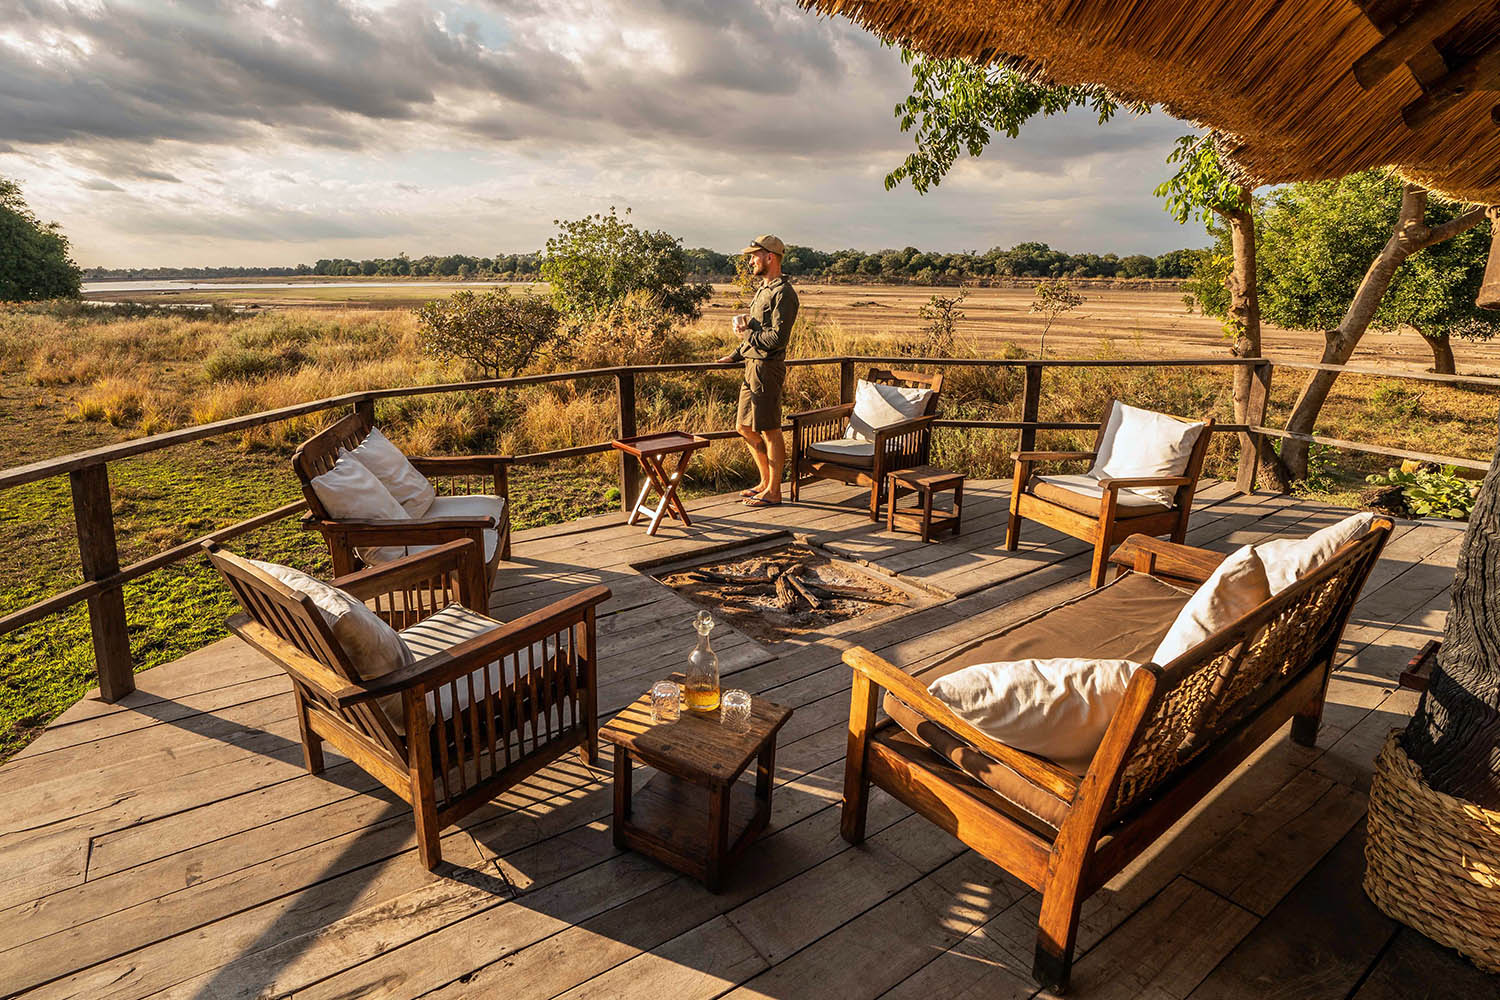 kakuli-beautiful-camp-lodge-zambia-in-style-tours-safari-packages-lodges-south-luangwa-national-park-main-deck